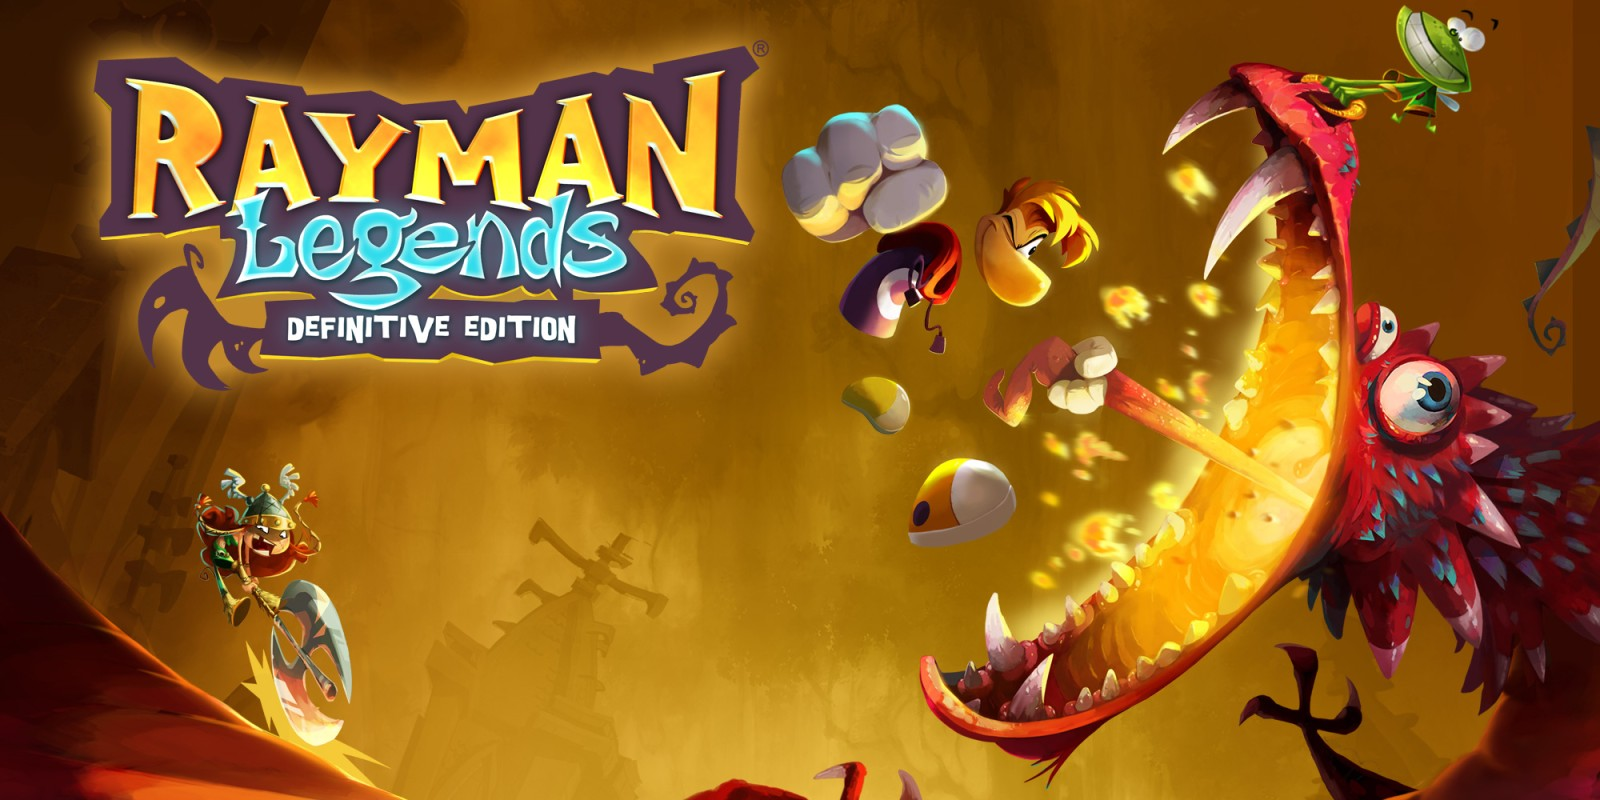 Filme Rayman for rayman legends: test, tipps, videos, news, release termin - pcgames.de